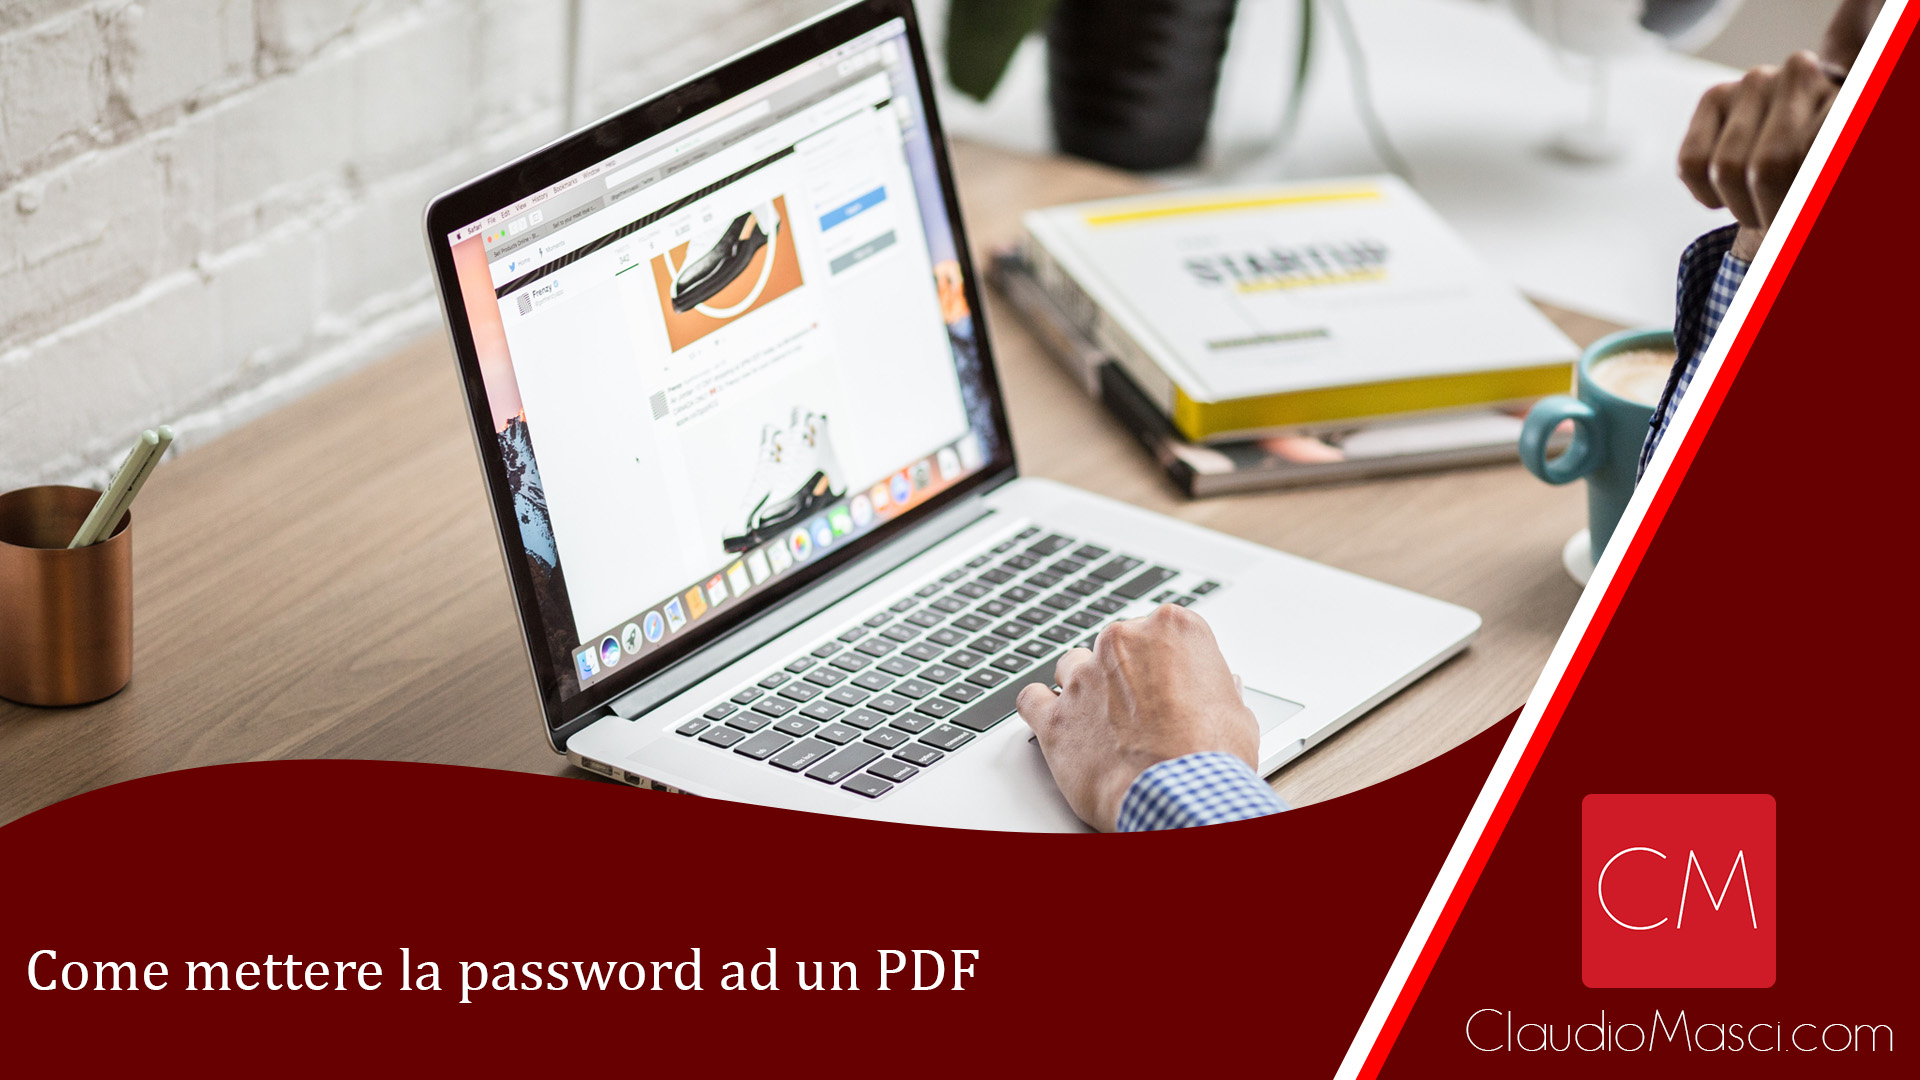 Come mettere la password ad un PDF